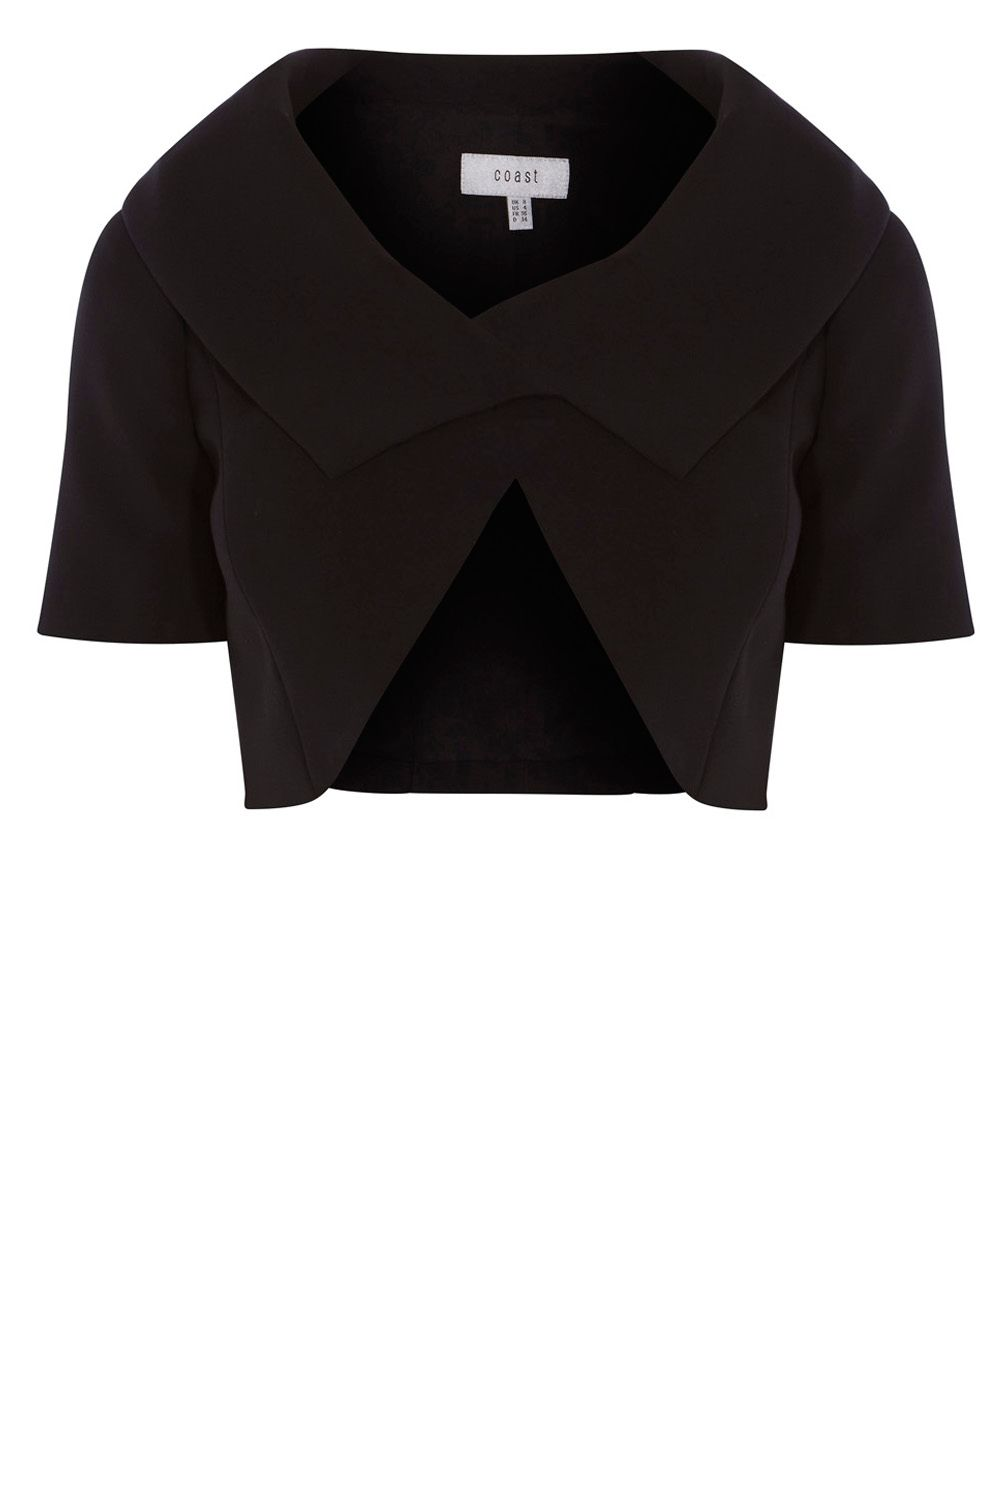 Coast Lilli Jacket, Black